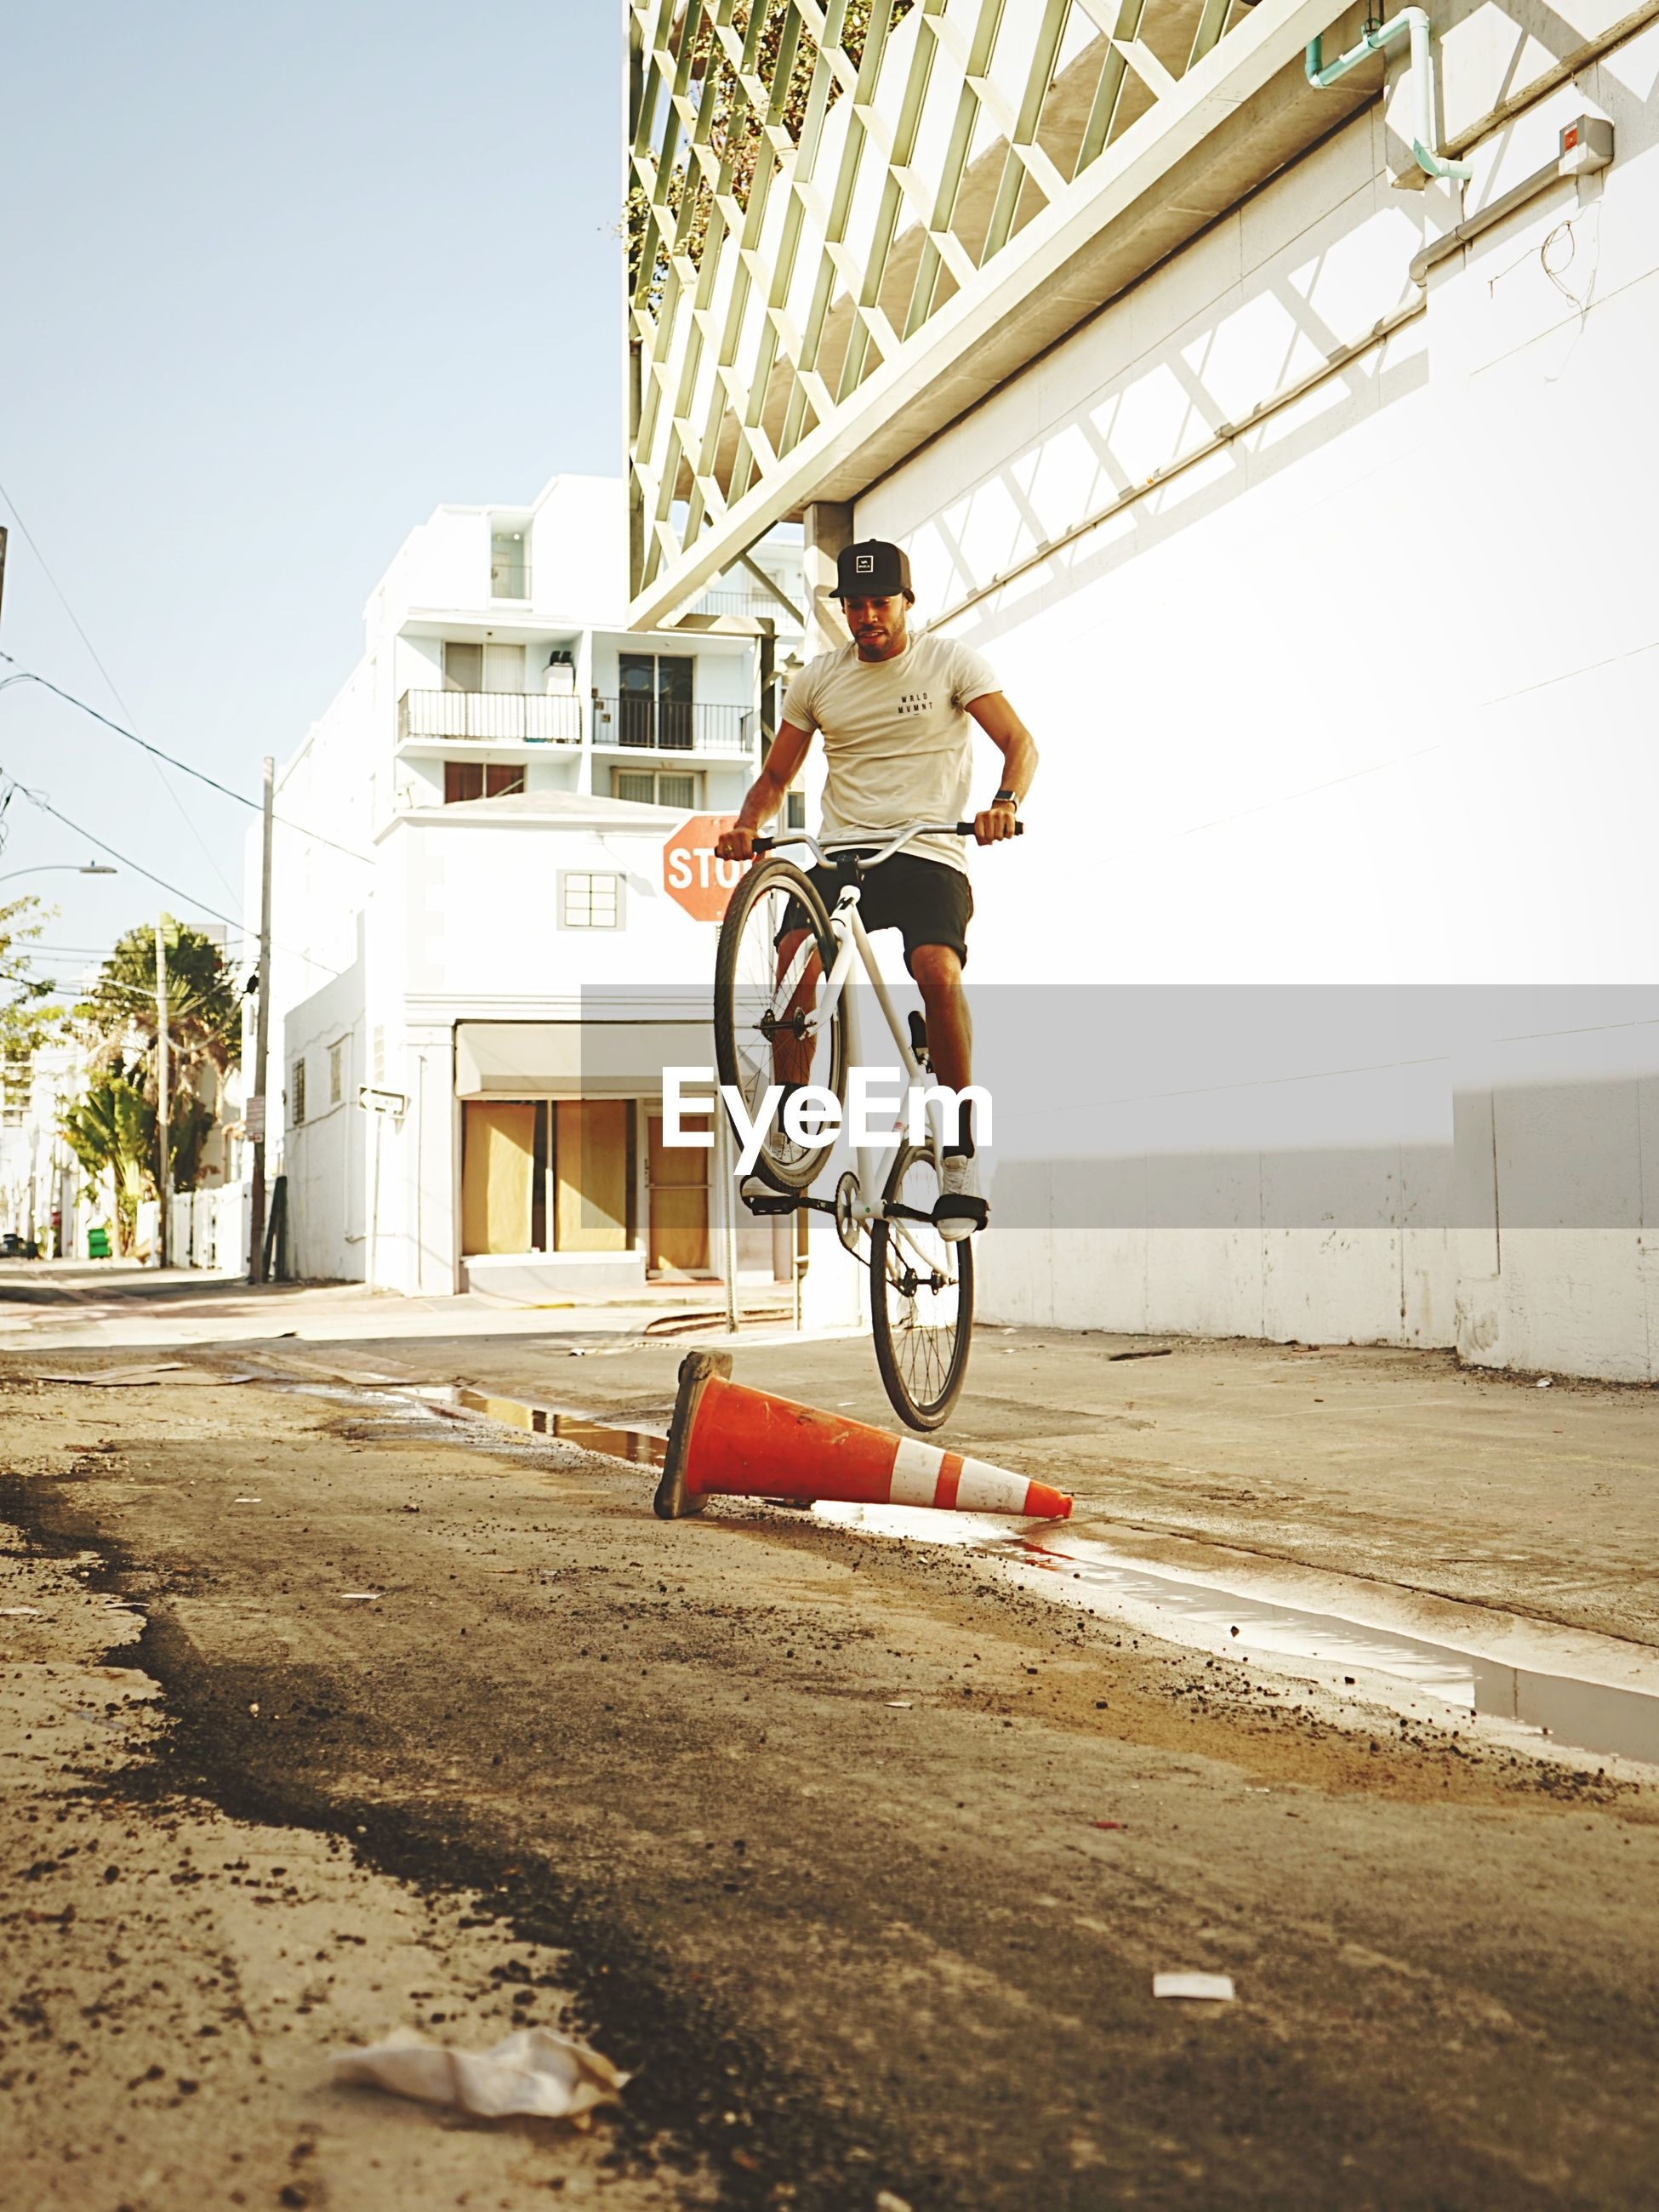 MAN RIDING BICYCLE ON CITY